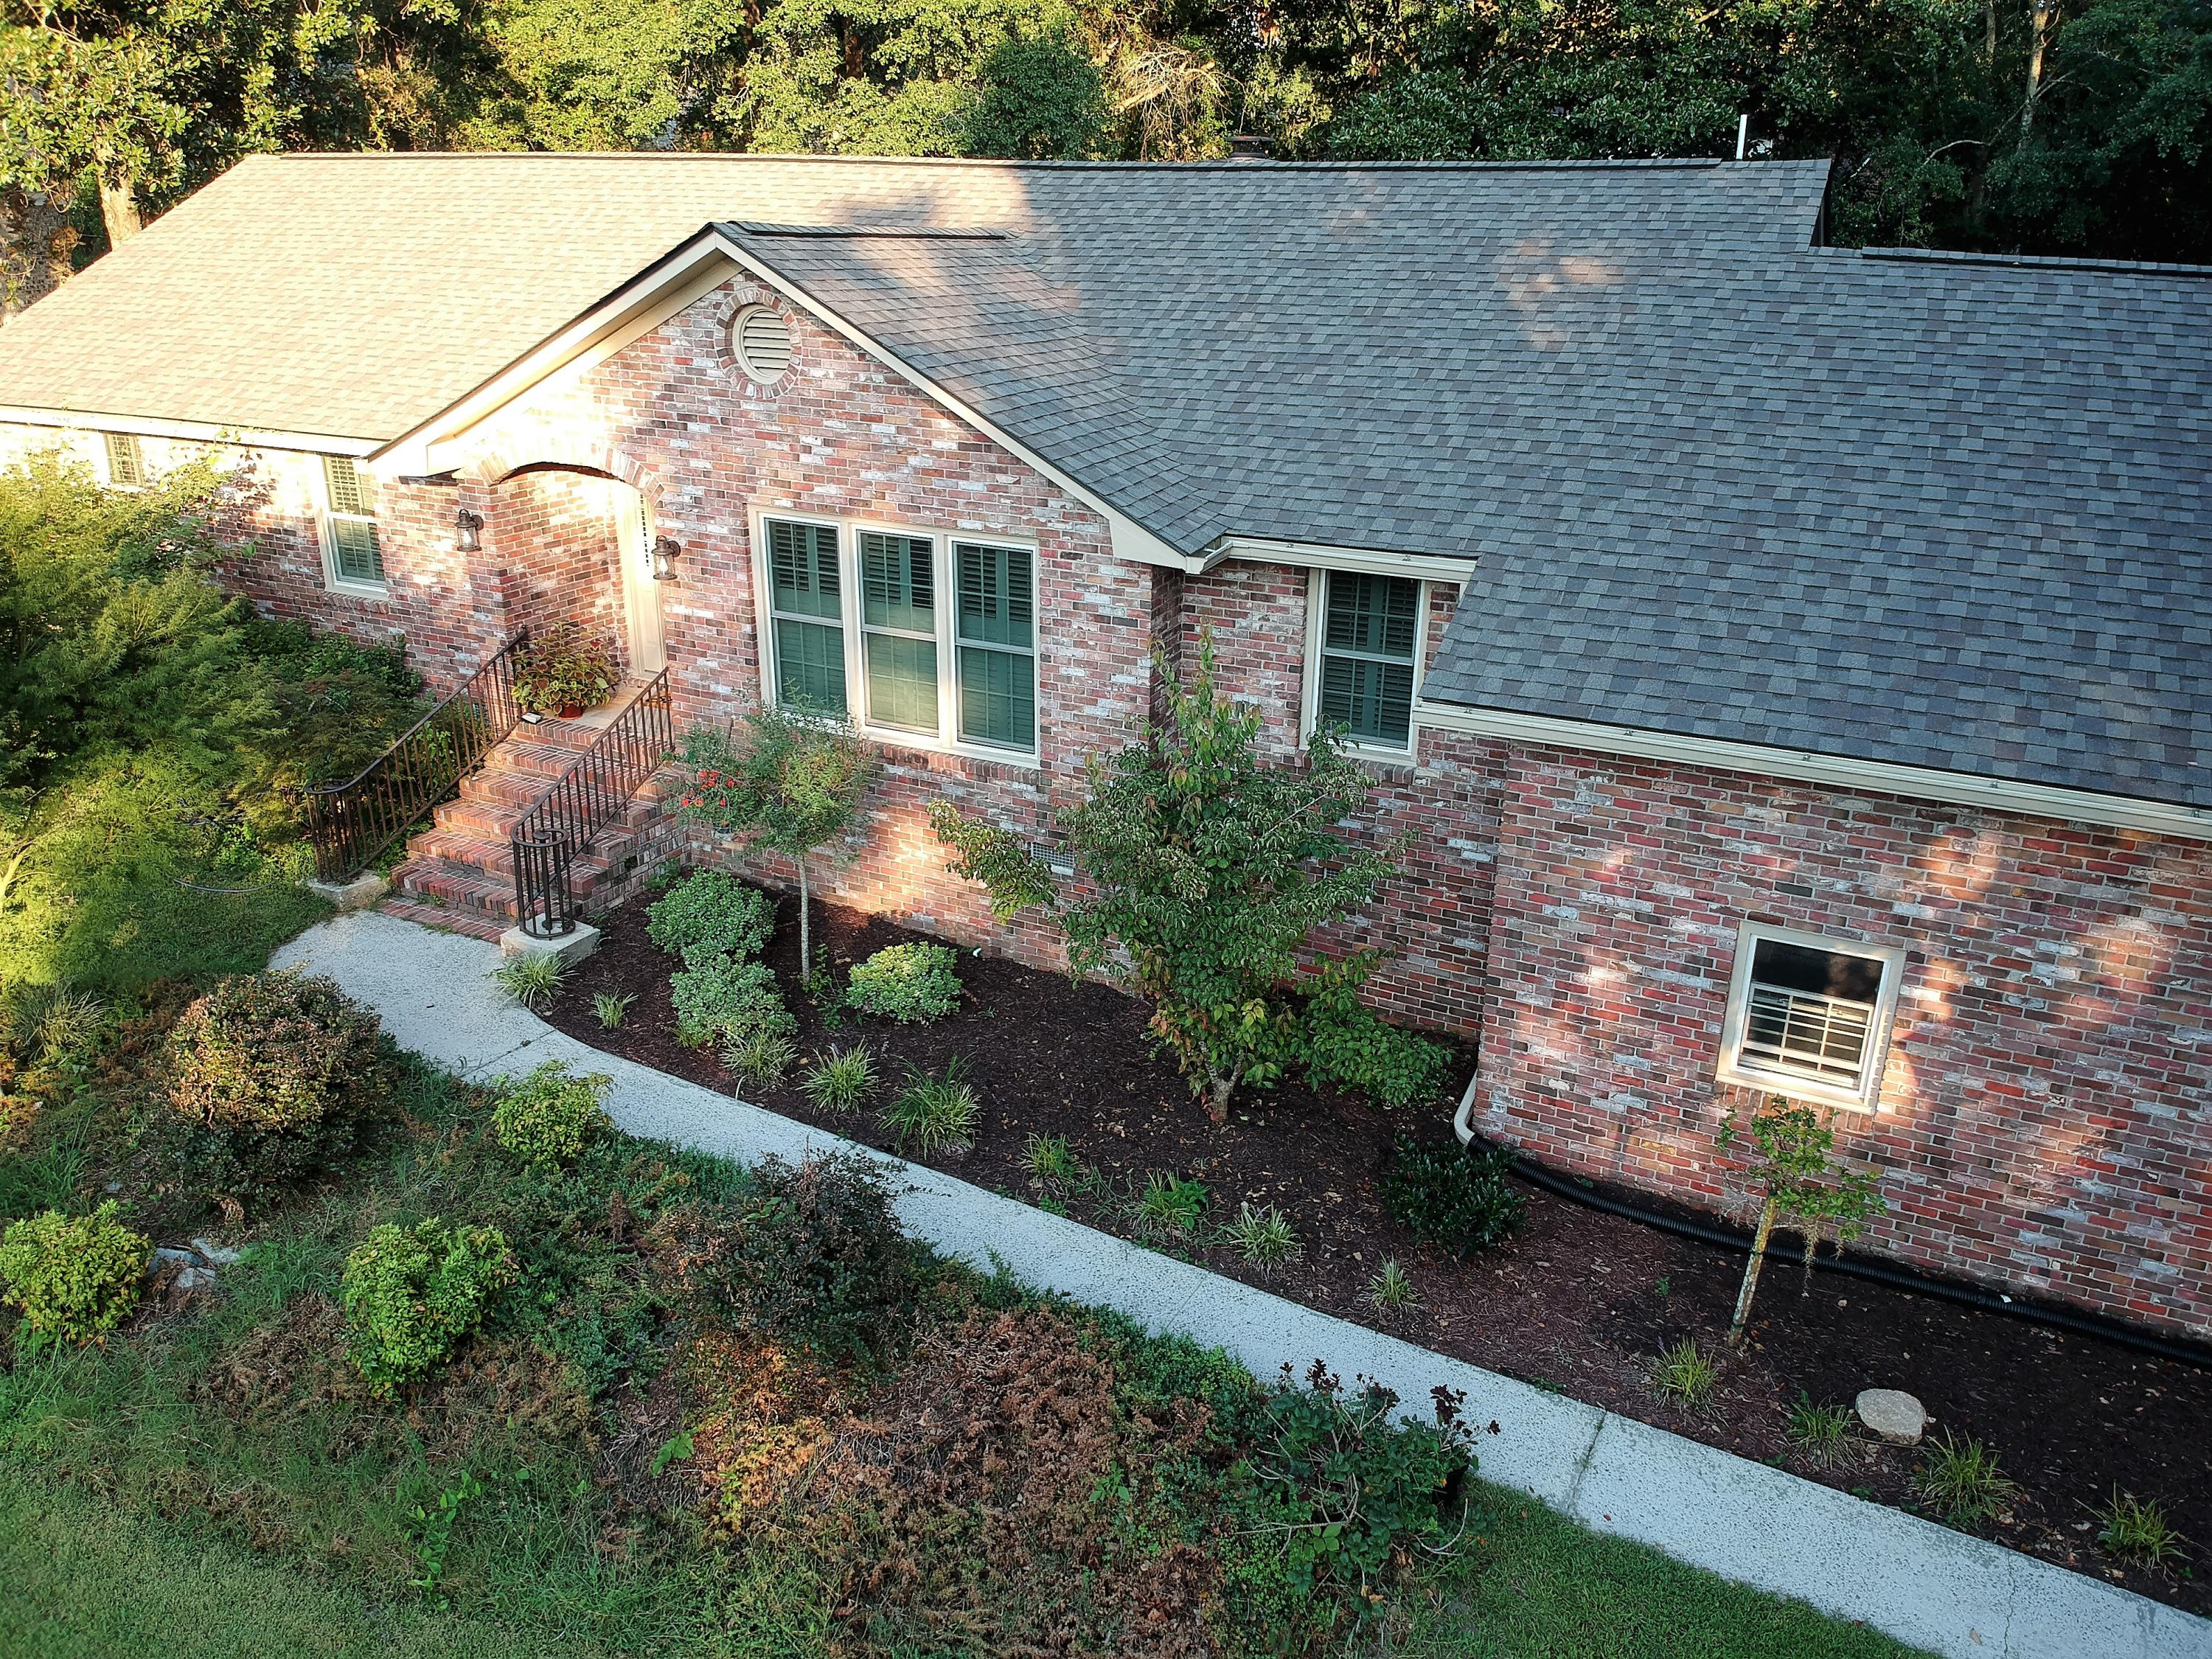 Dominion Hills Homes For Sale - 1027 Yeamans Hall, Hanahan, SC - 35